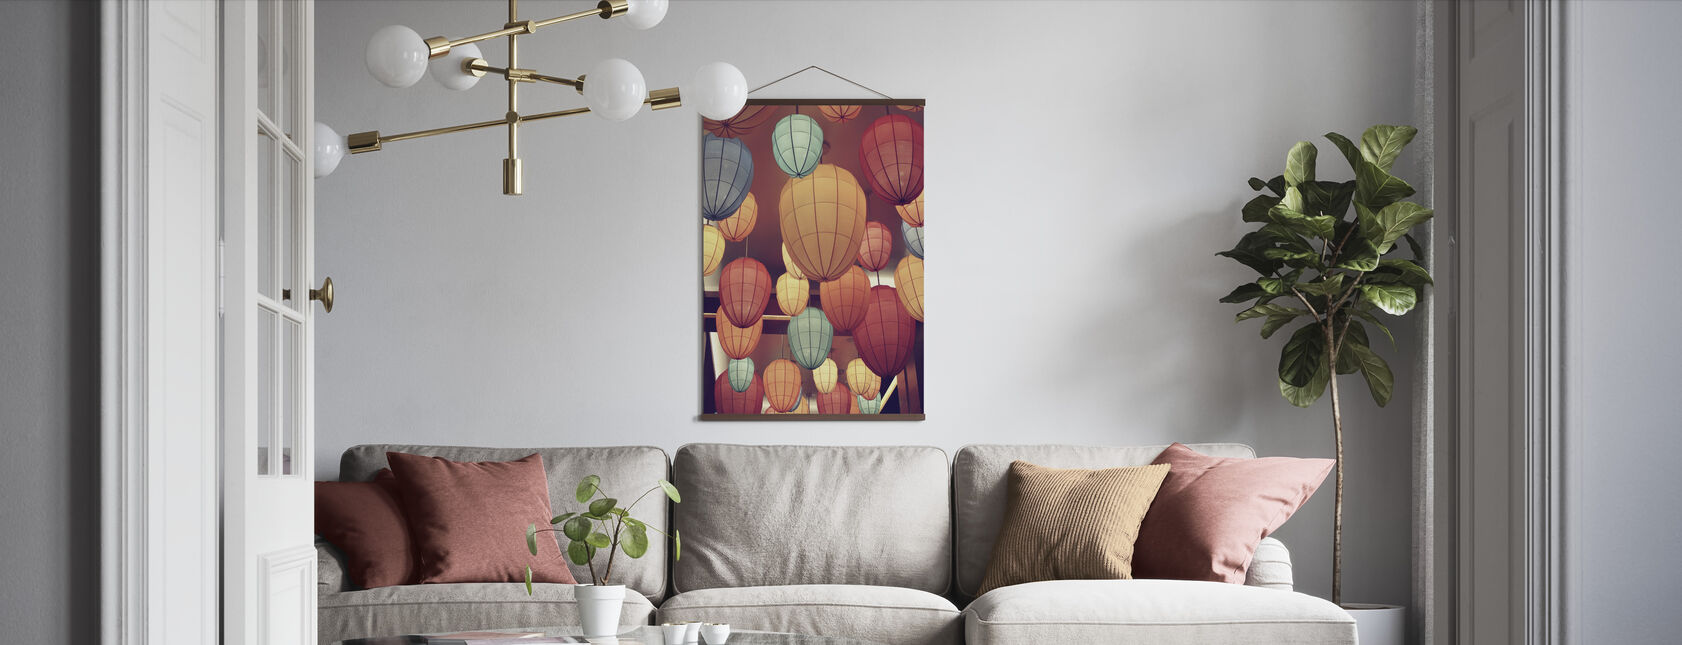 Lamps - Poster - Living Room